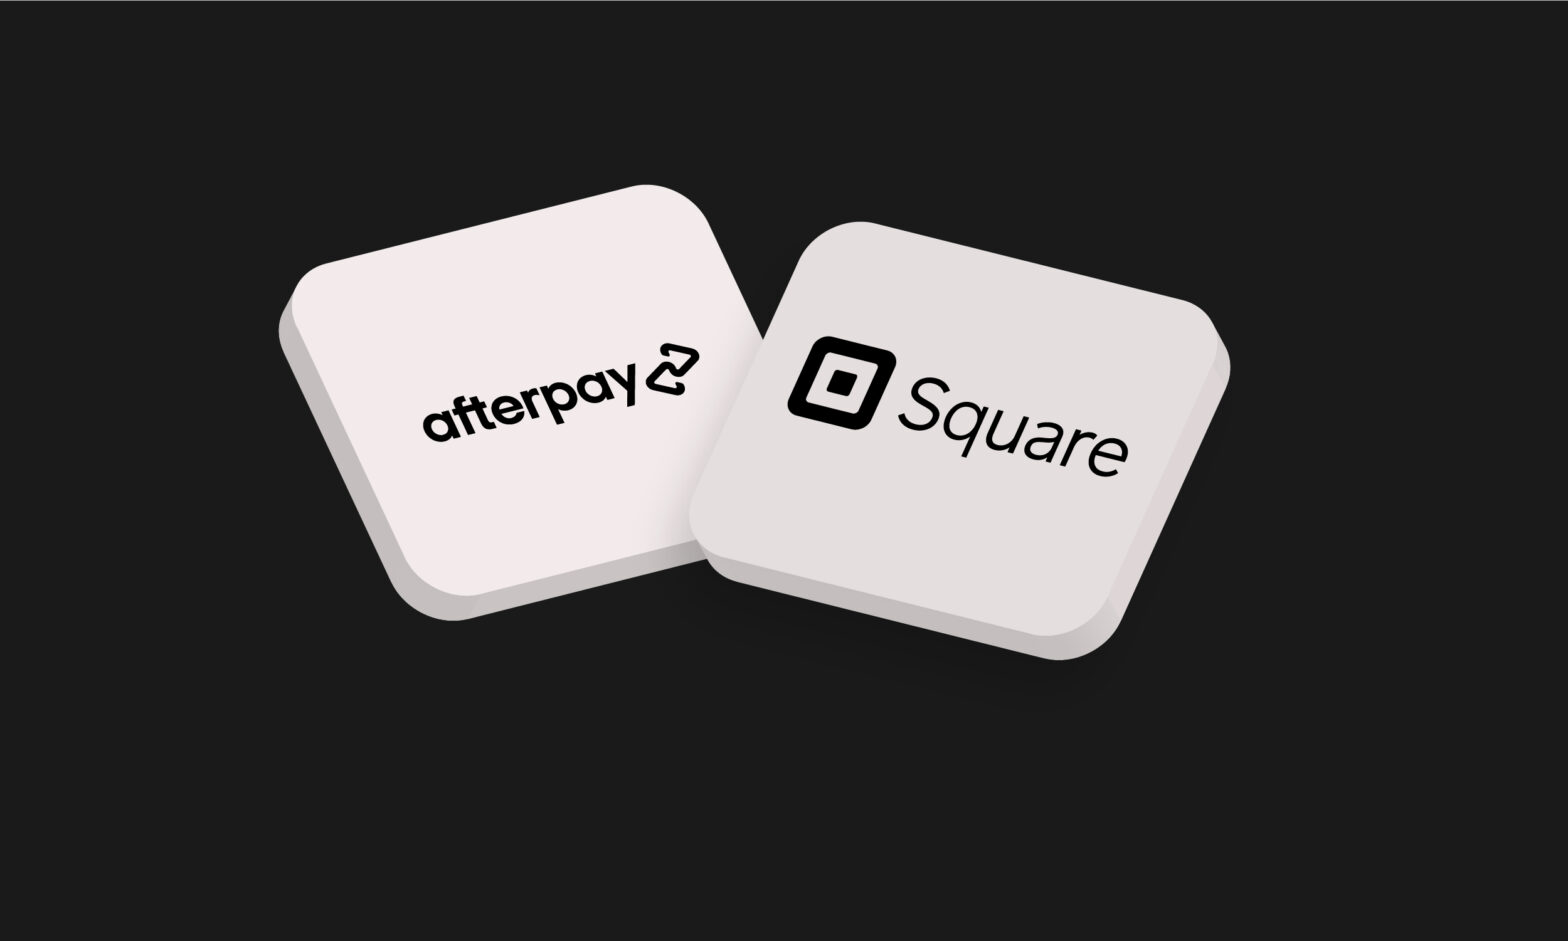 Square after pay